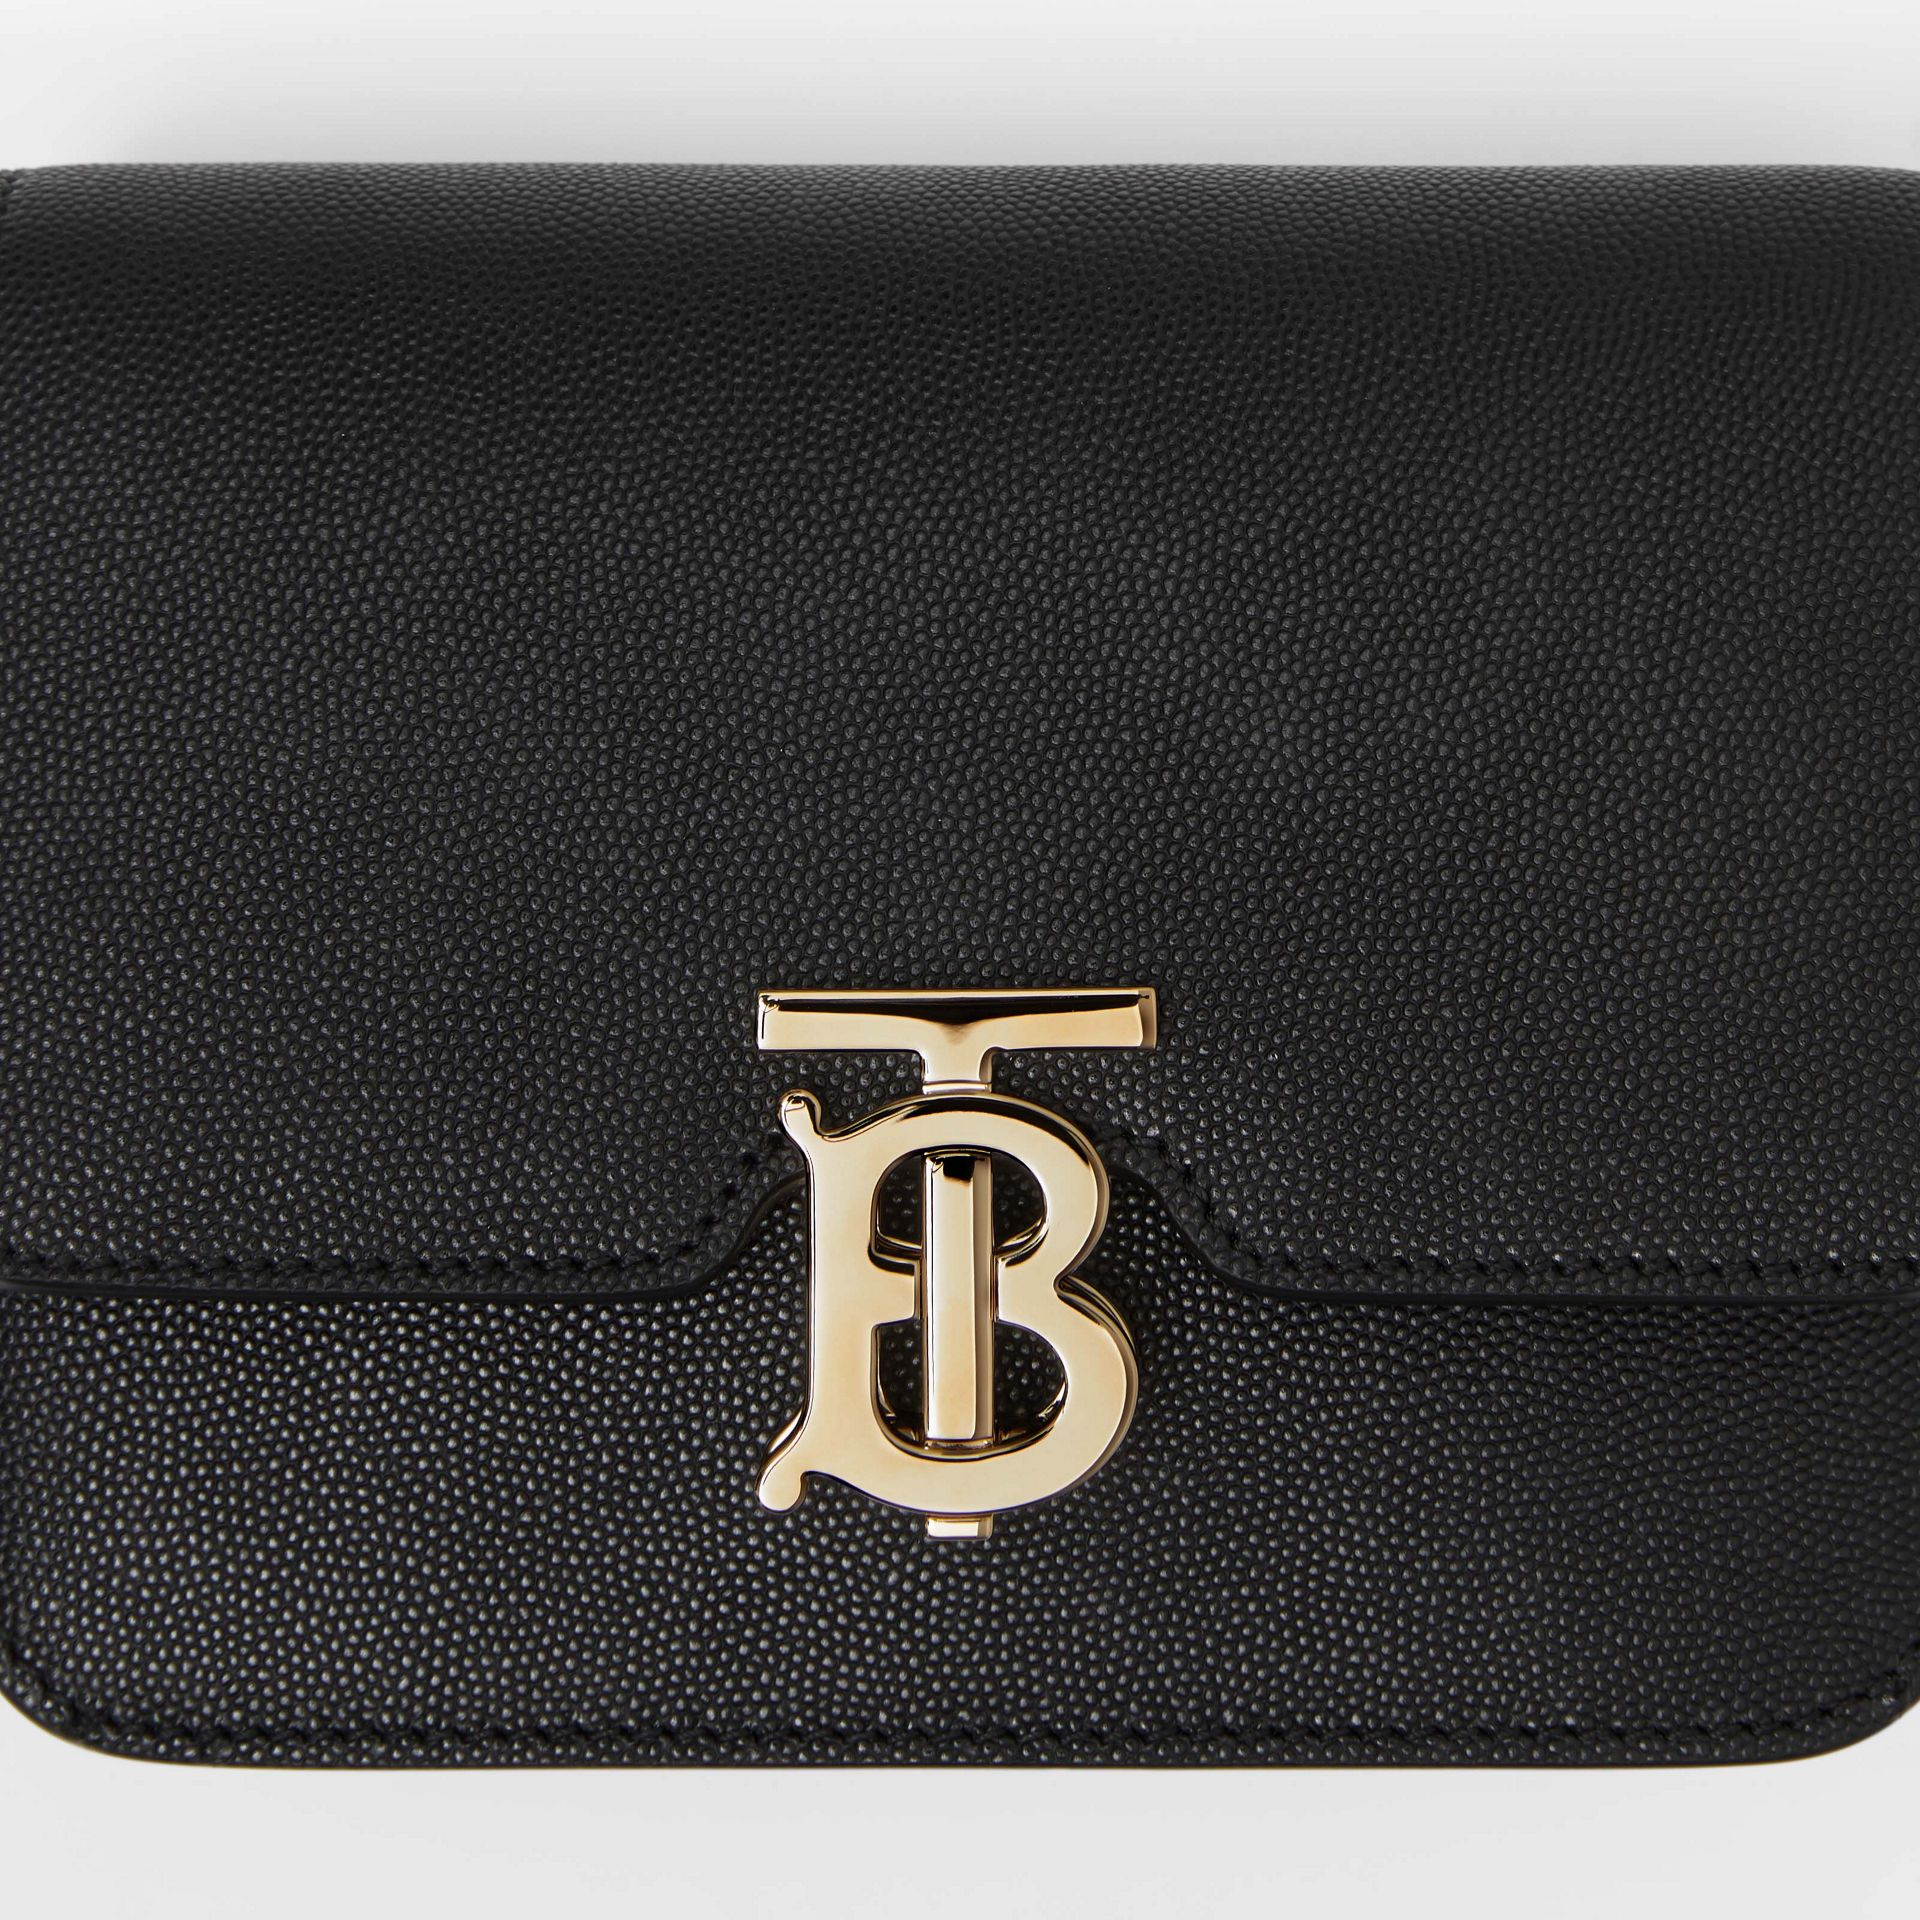 Mini Grainy Leather TB Bag in Black - Women | Burberry Singapore - gallery image 1